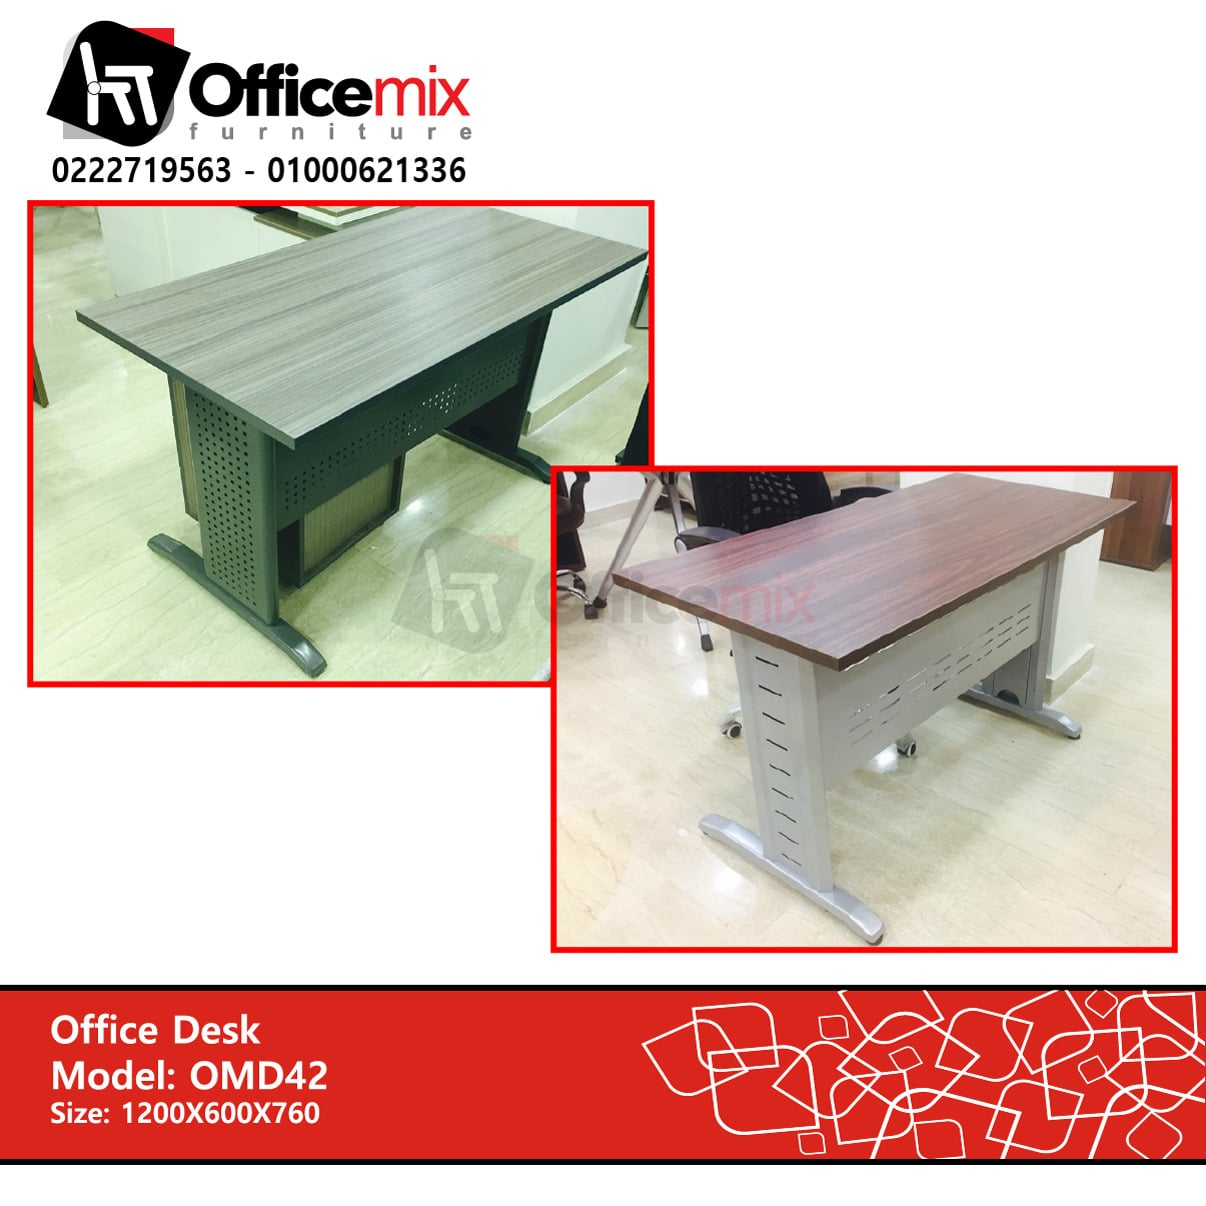 office mix Staff Desk D42